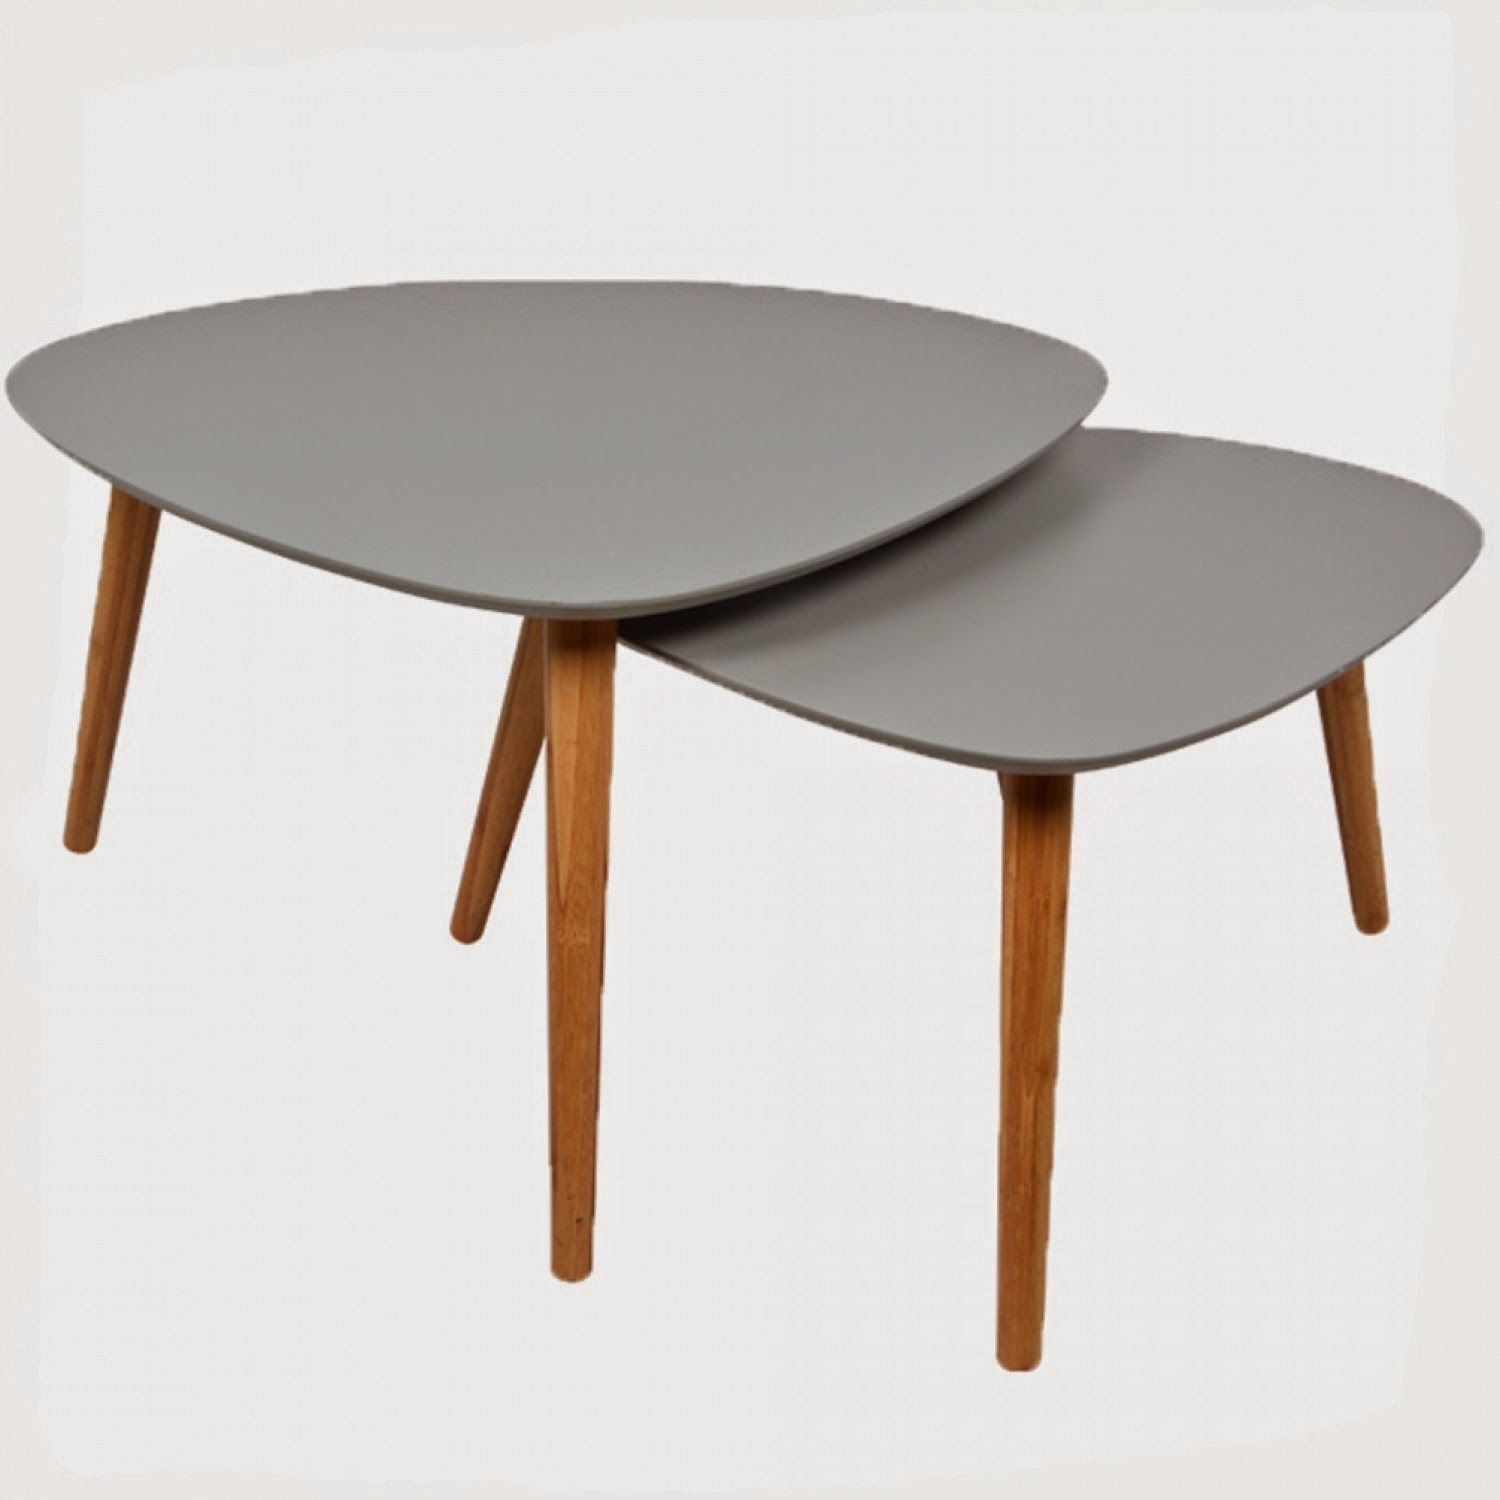 Les tables basses gigognes caract rielle bloglovin - Tables gigognes bois ...